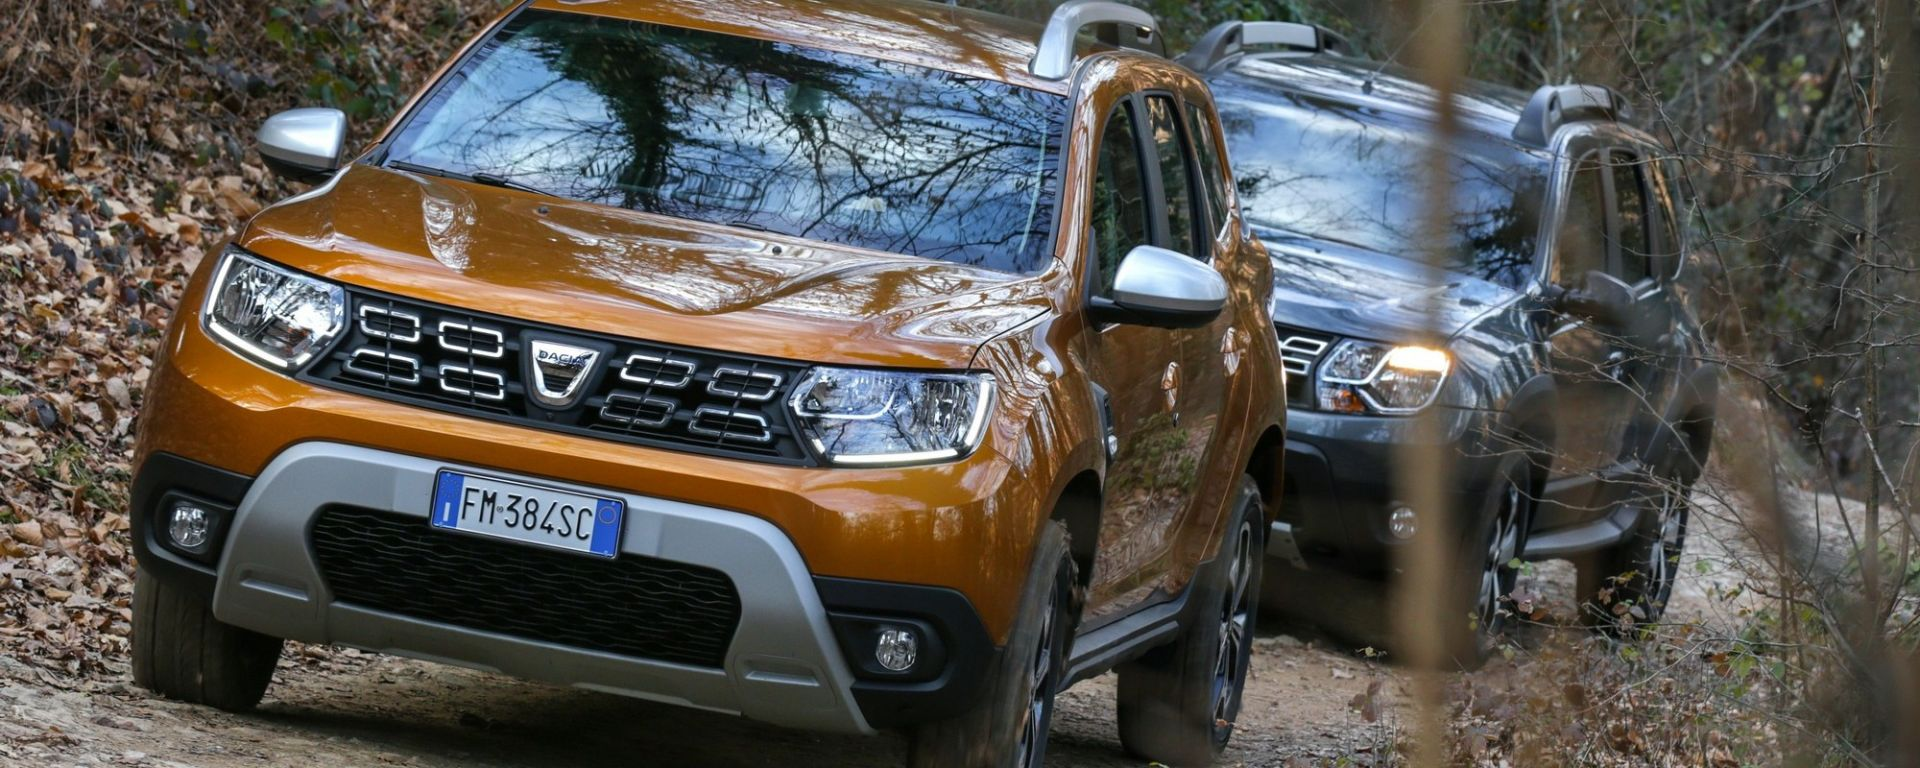 Dacia Duster 2018 vs Dacia Duster Brave2 in offroad